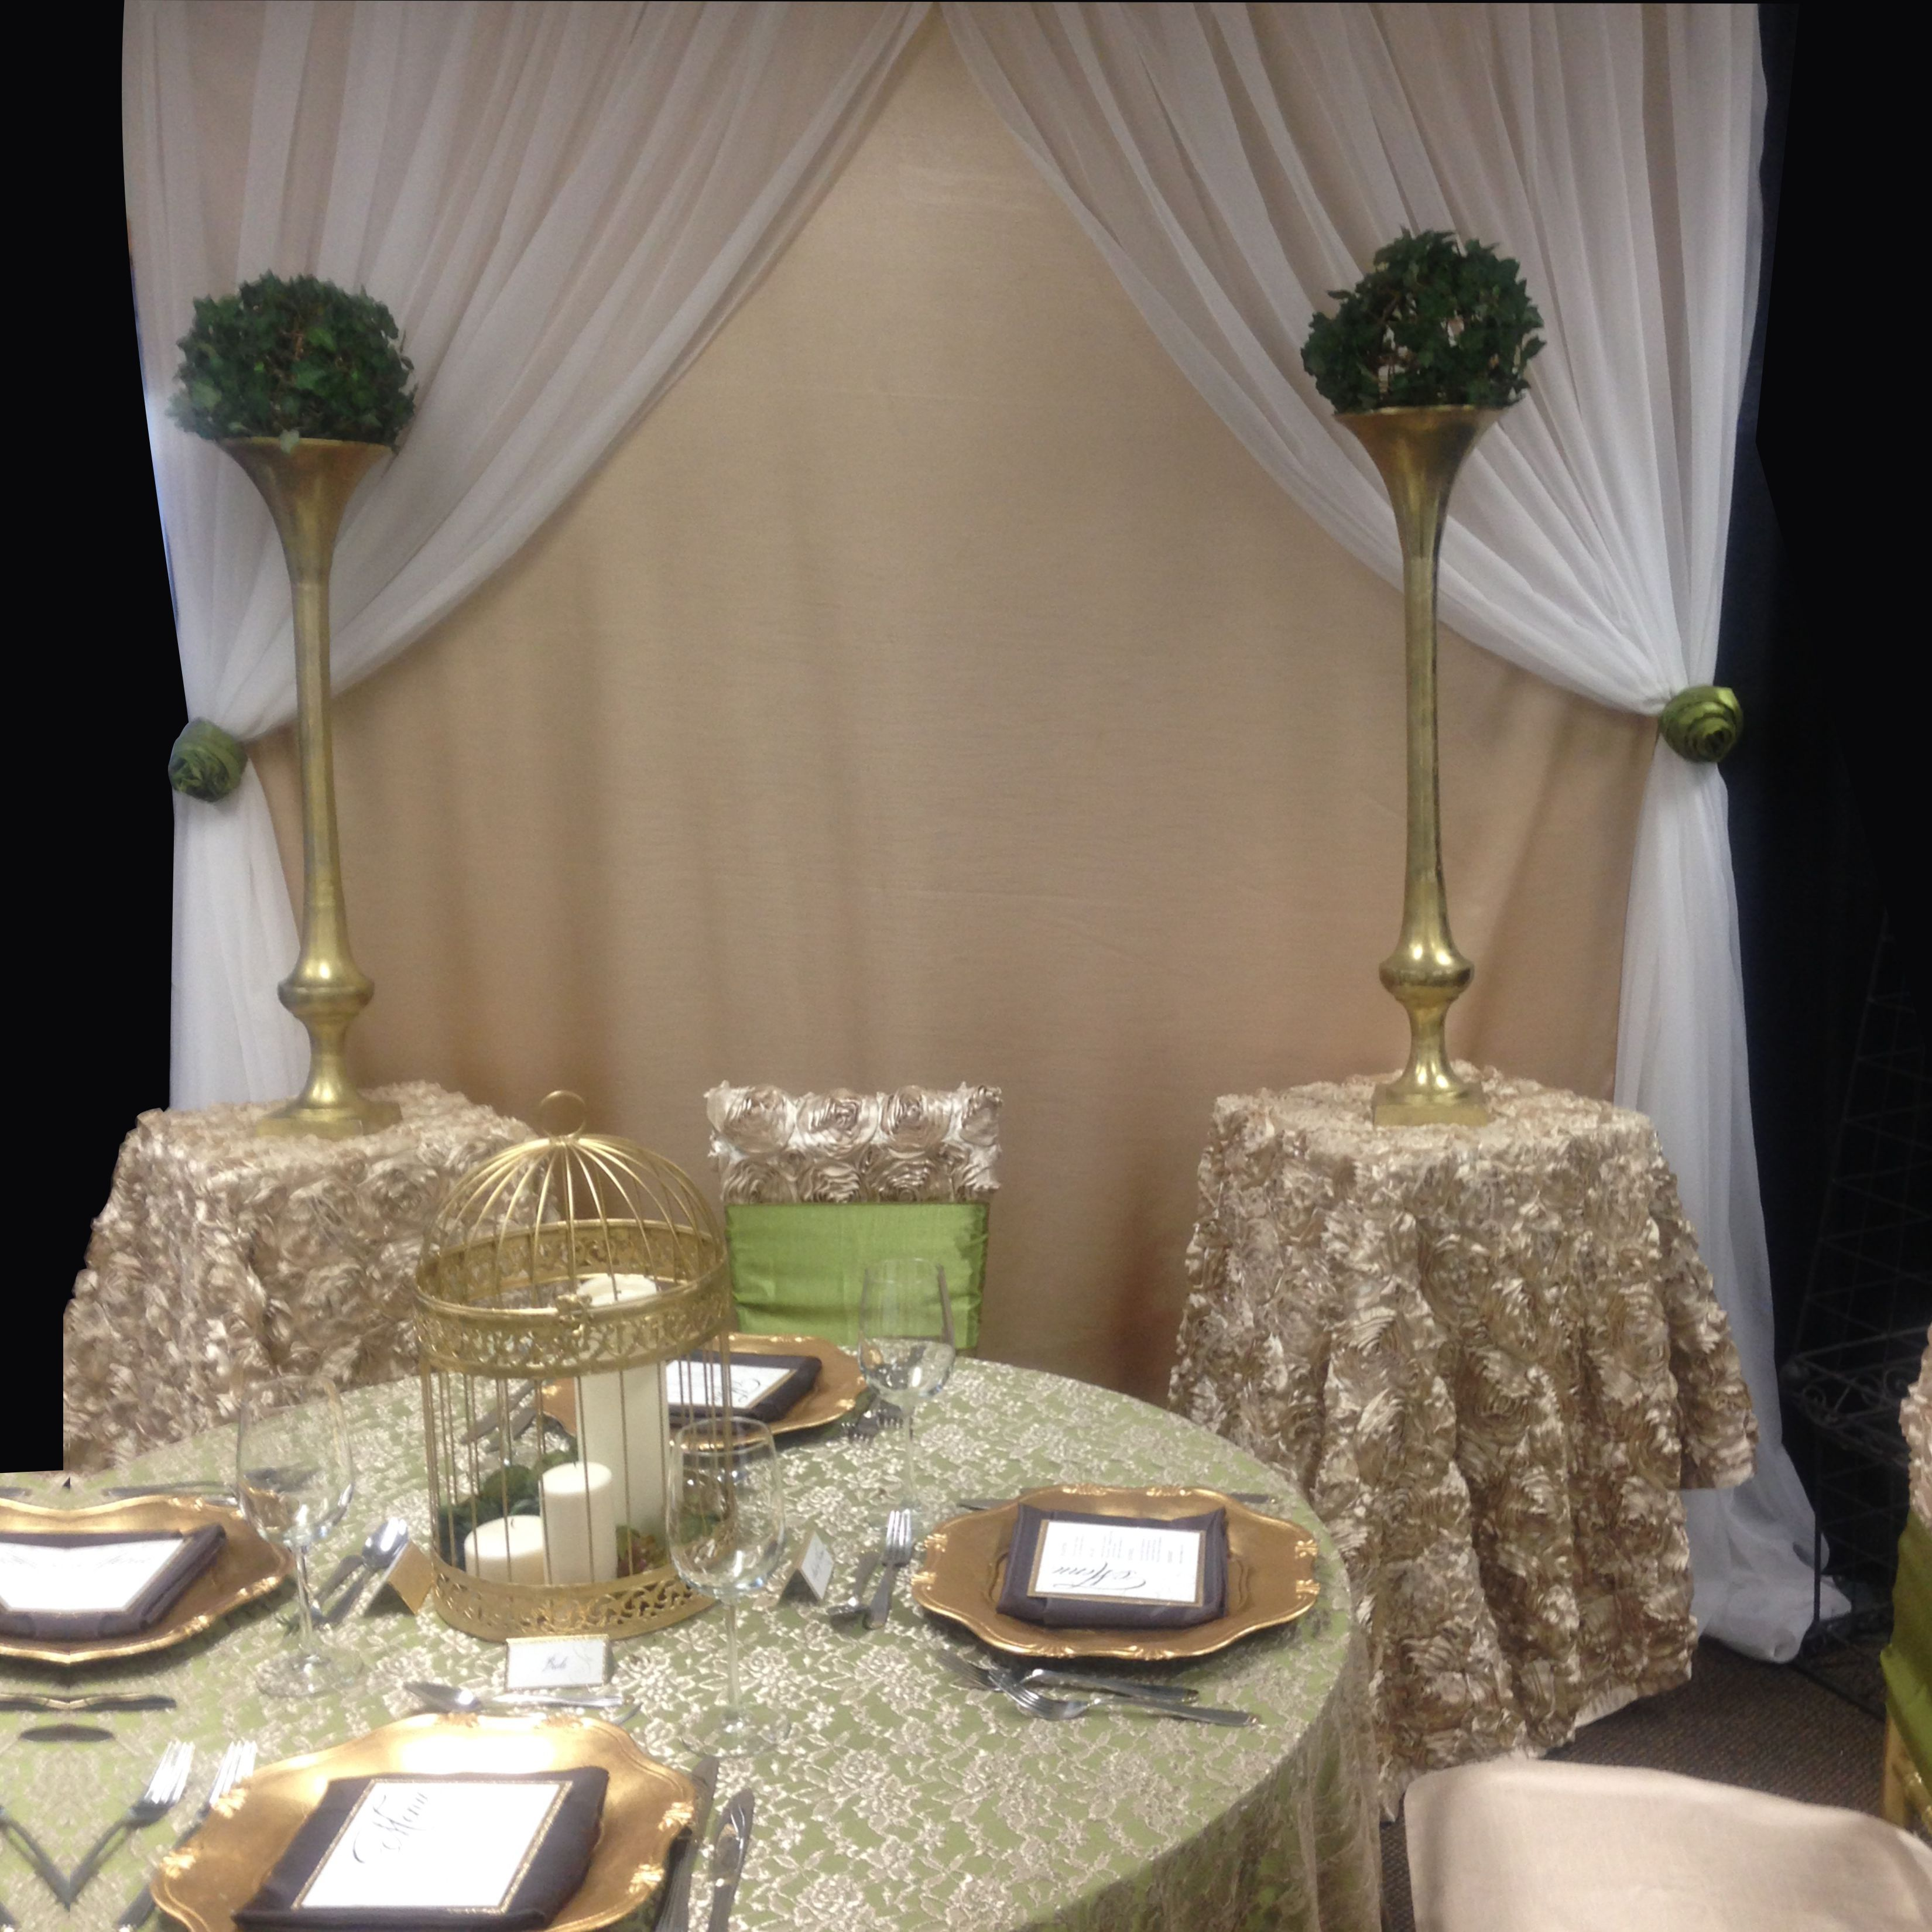 Learn how to set up a beautiful window backdrop--step-by-step!